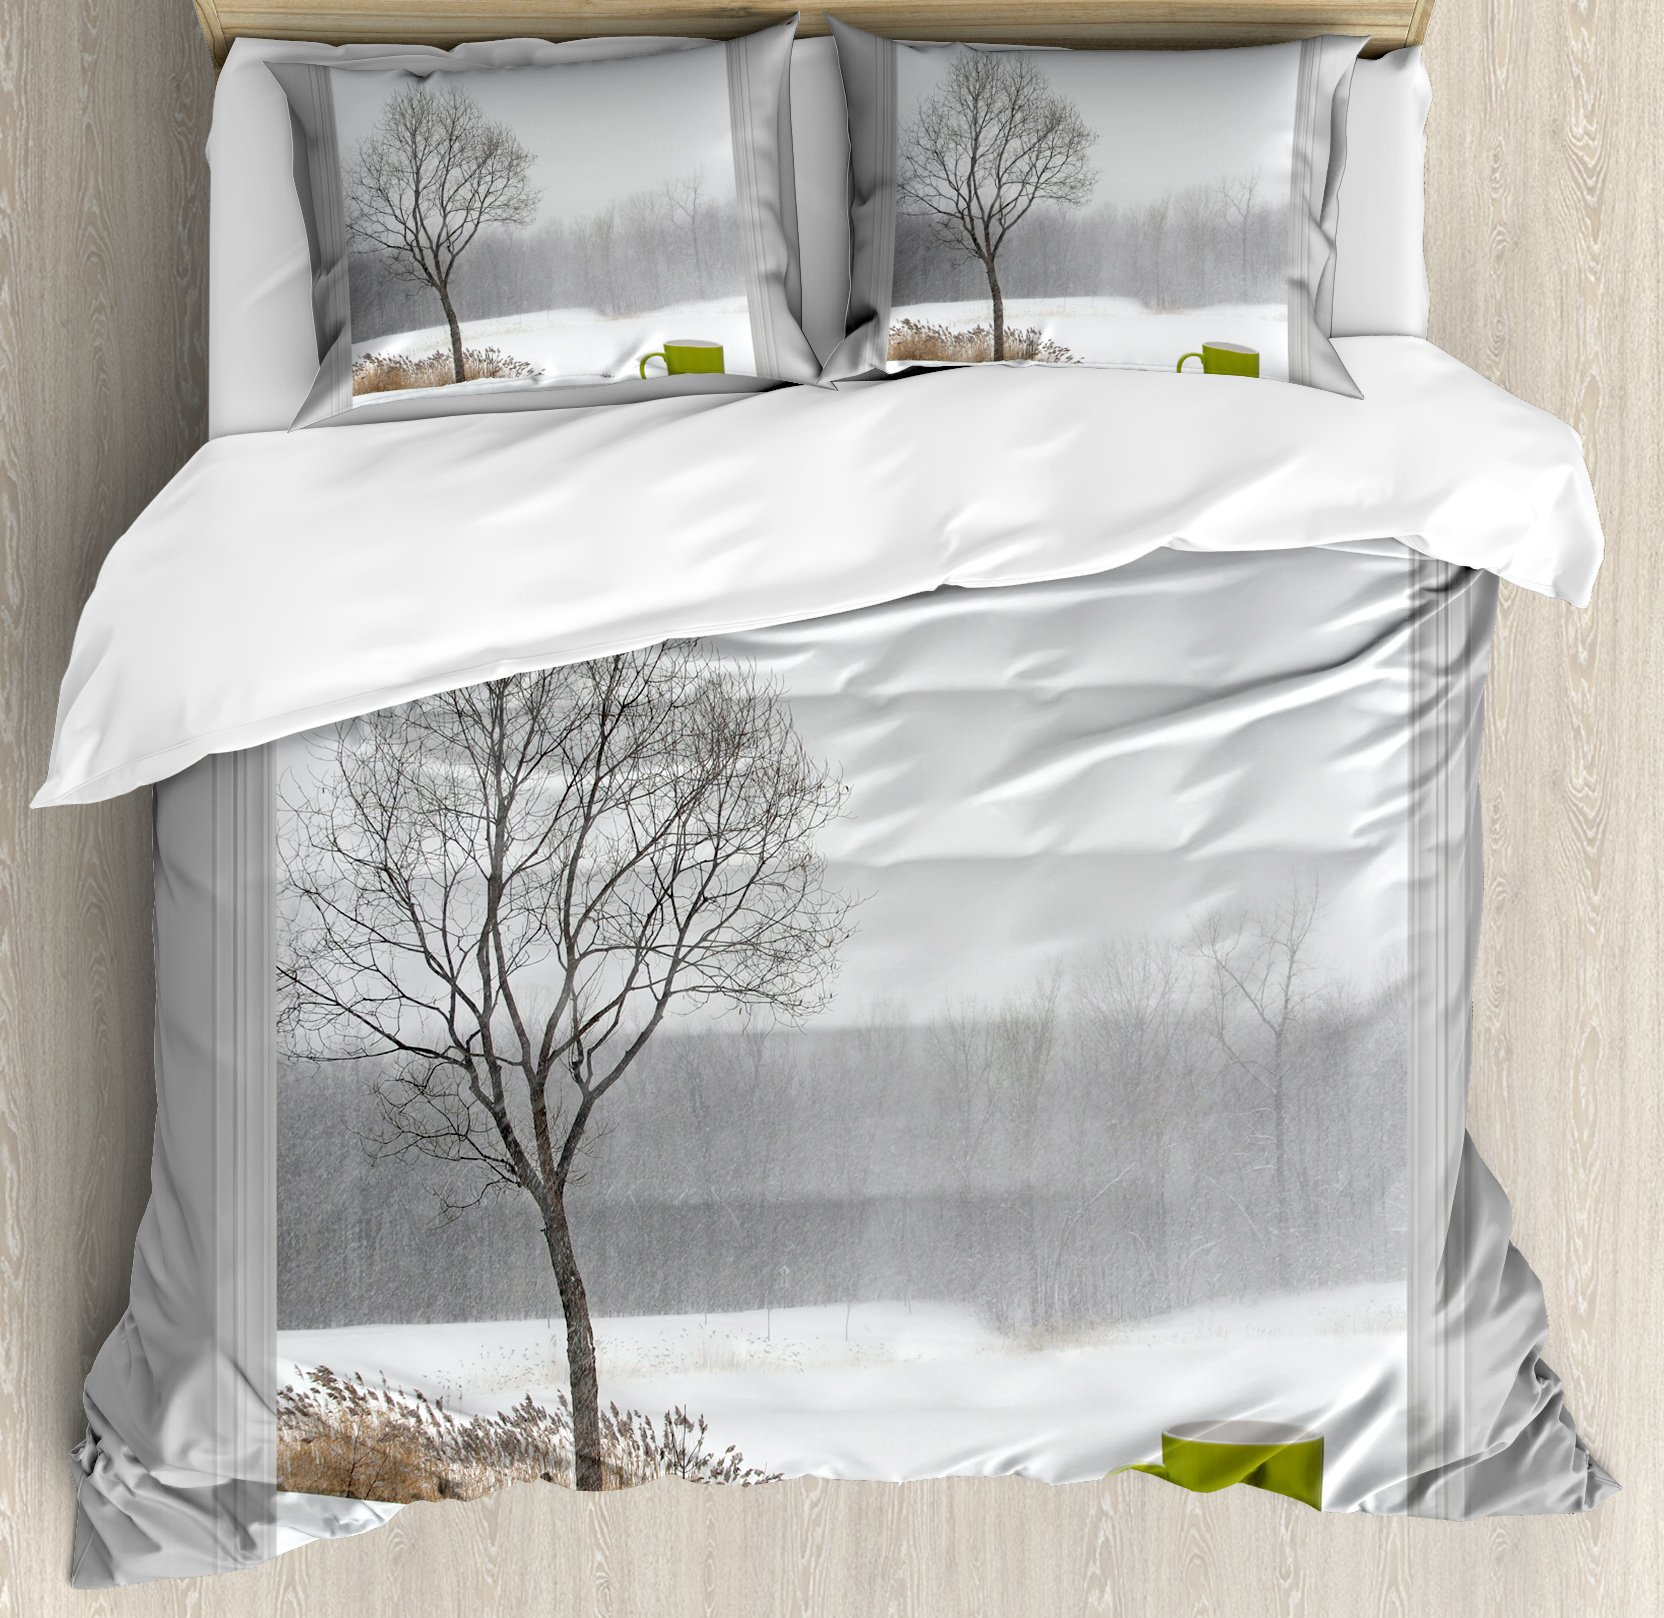 Winter Duvet Cover Set King Size by Ambesonne, Green Teacup on a Windowsill Forest Outdoors February Snowstorm Scenic Countryside, Decorative 3 Piece Bedding Set with 2 Pillow Shams,